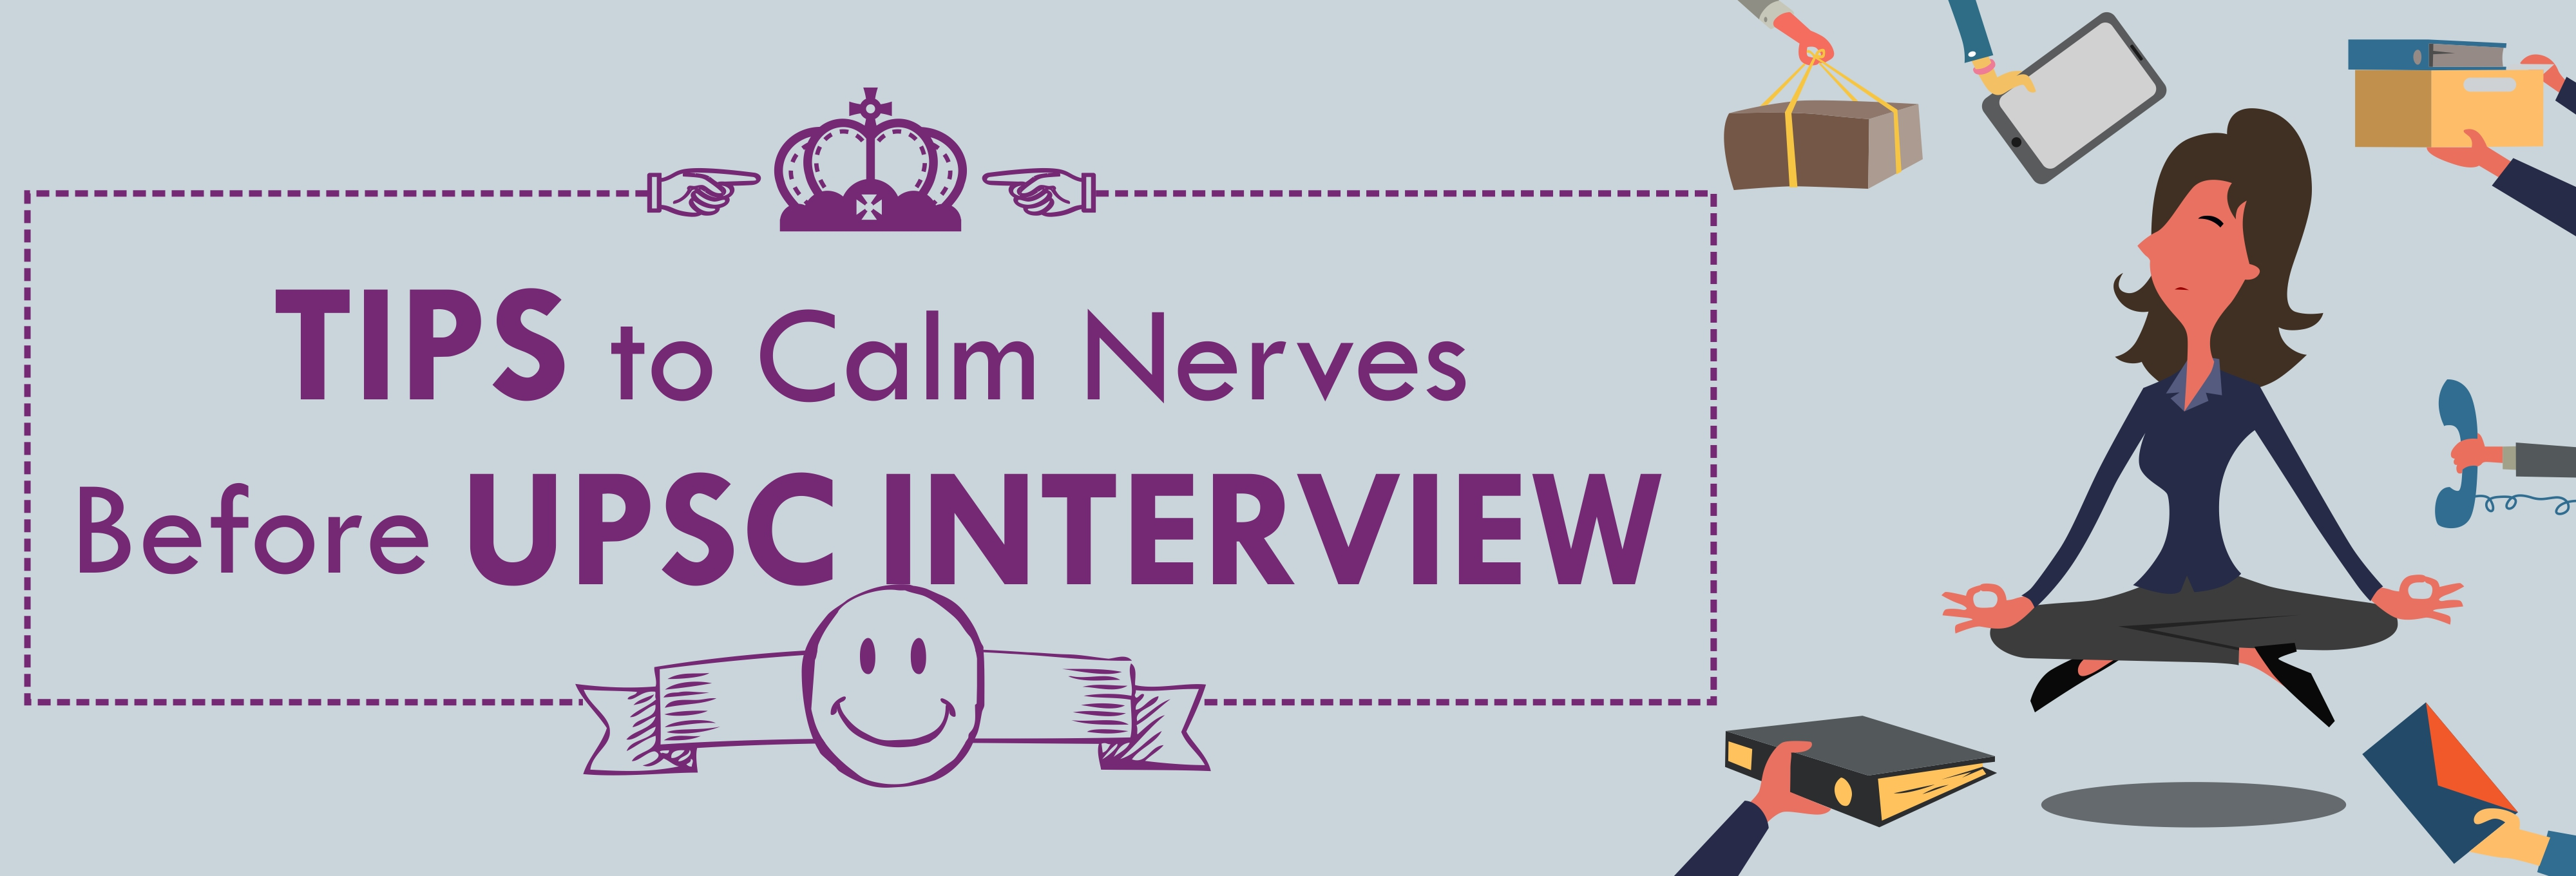 tips to calm nerves before upsc interview